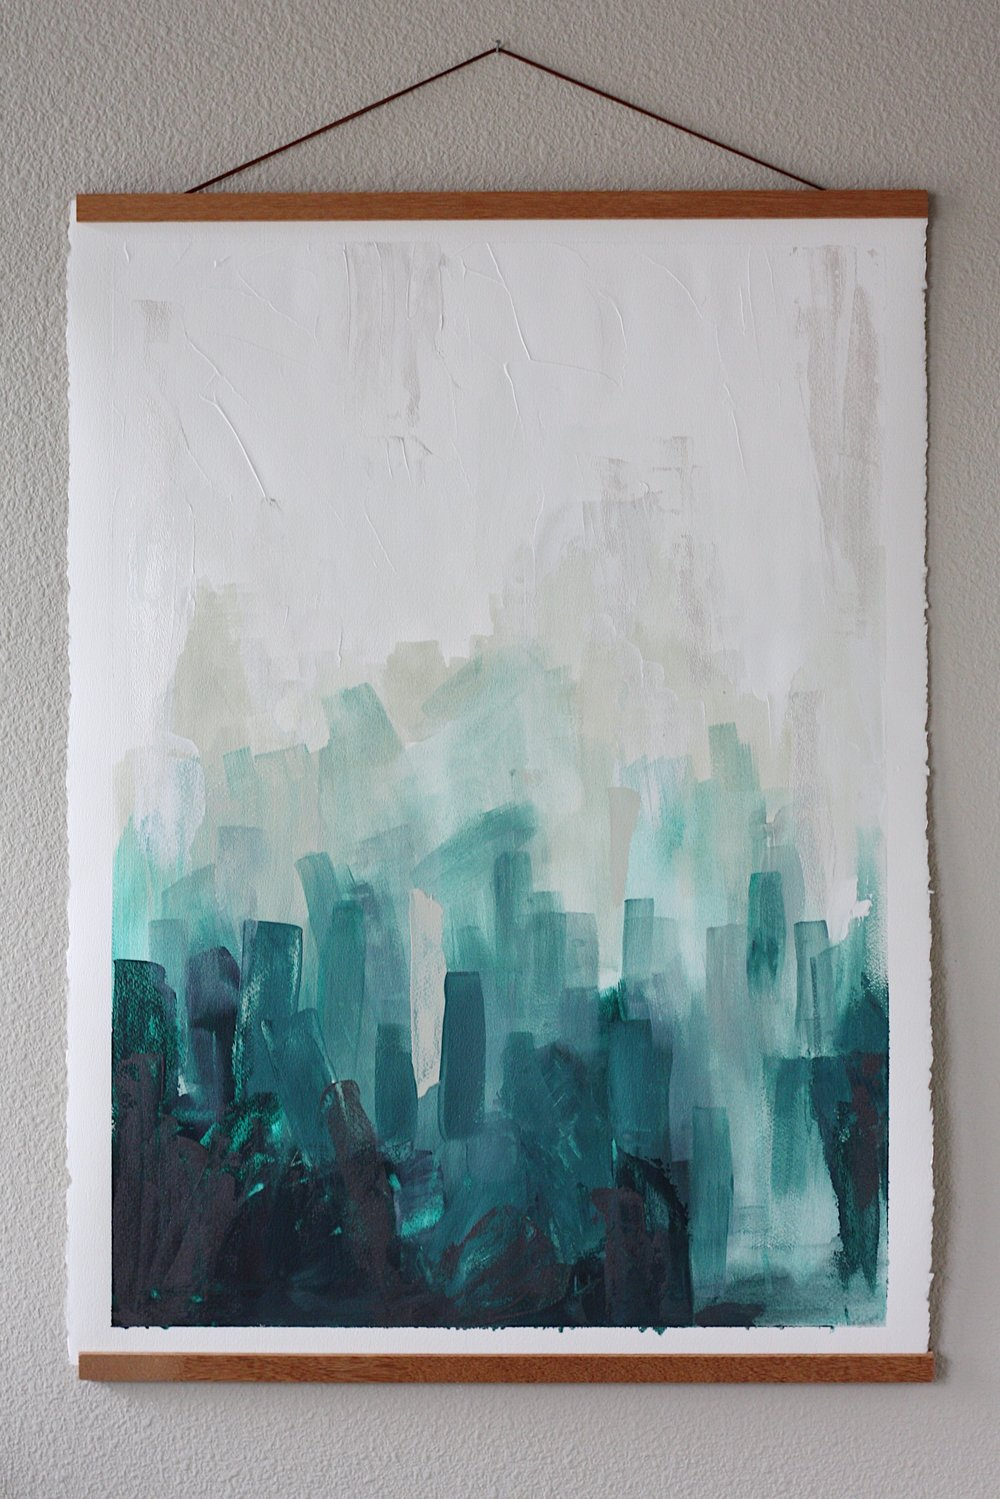 Lindsay Gilmore Original Abstract Art Constraints Series Forest Park 22x30 on paper.JPG